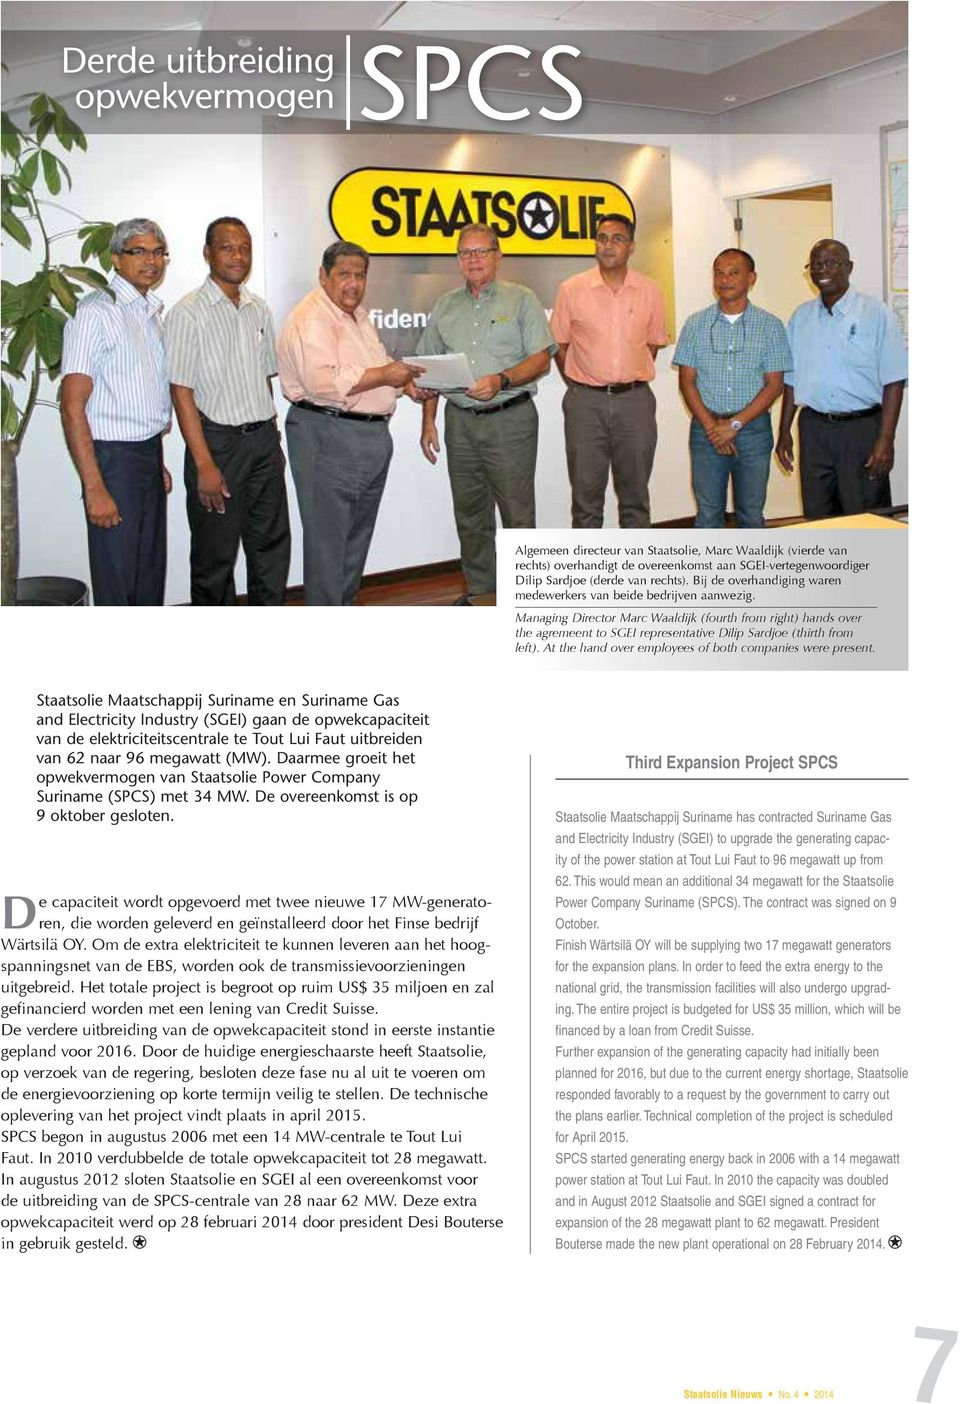 Managing Director Marc Waaldijk (fourth from right) hands over the agremeent to SGEI representative Dilip Sardjoe (thirth from left). At the hand over employees of both companies were present.